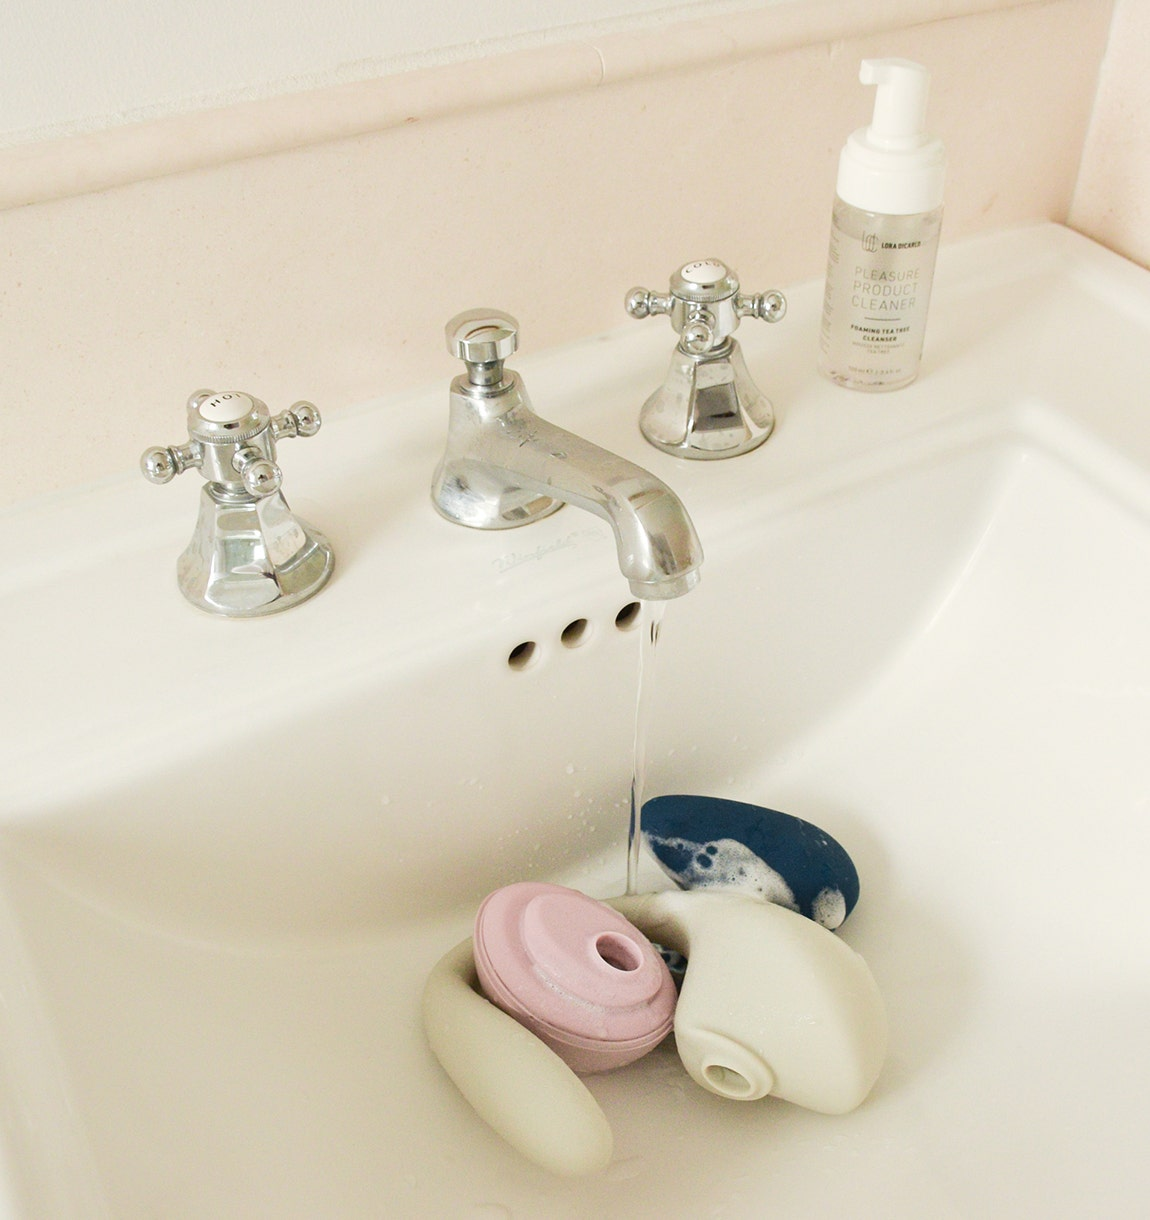 Foamed products in a sink